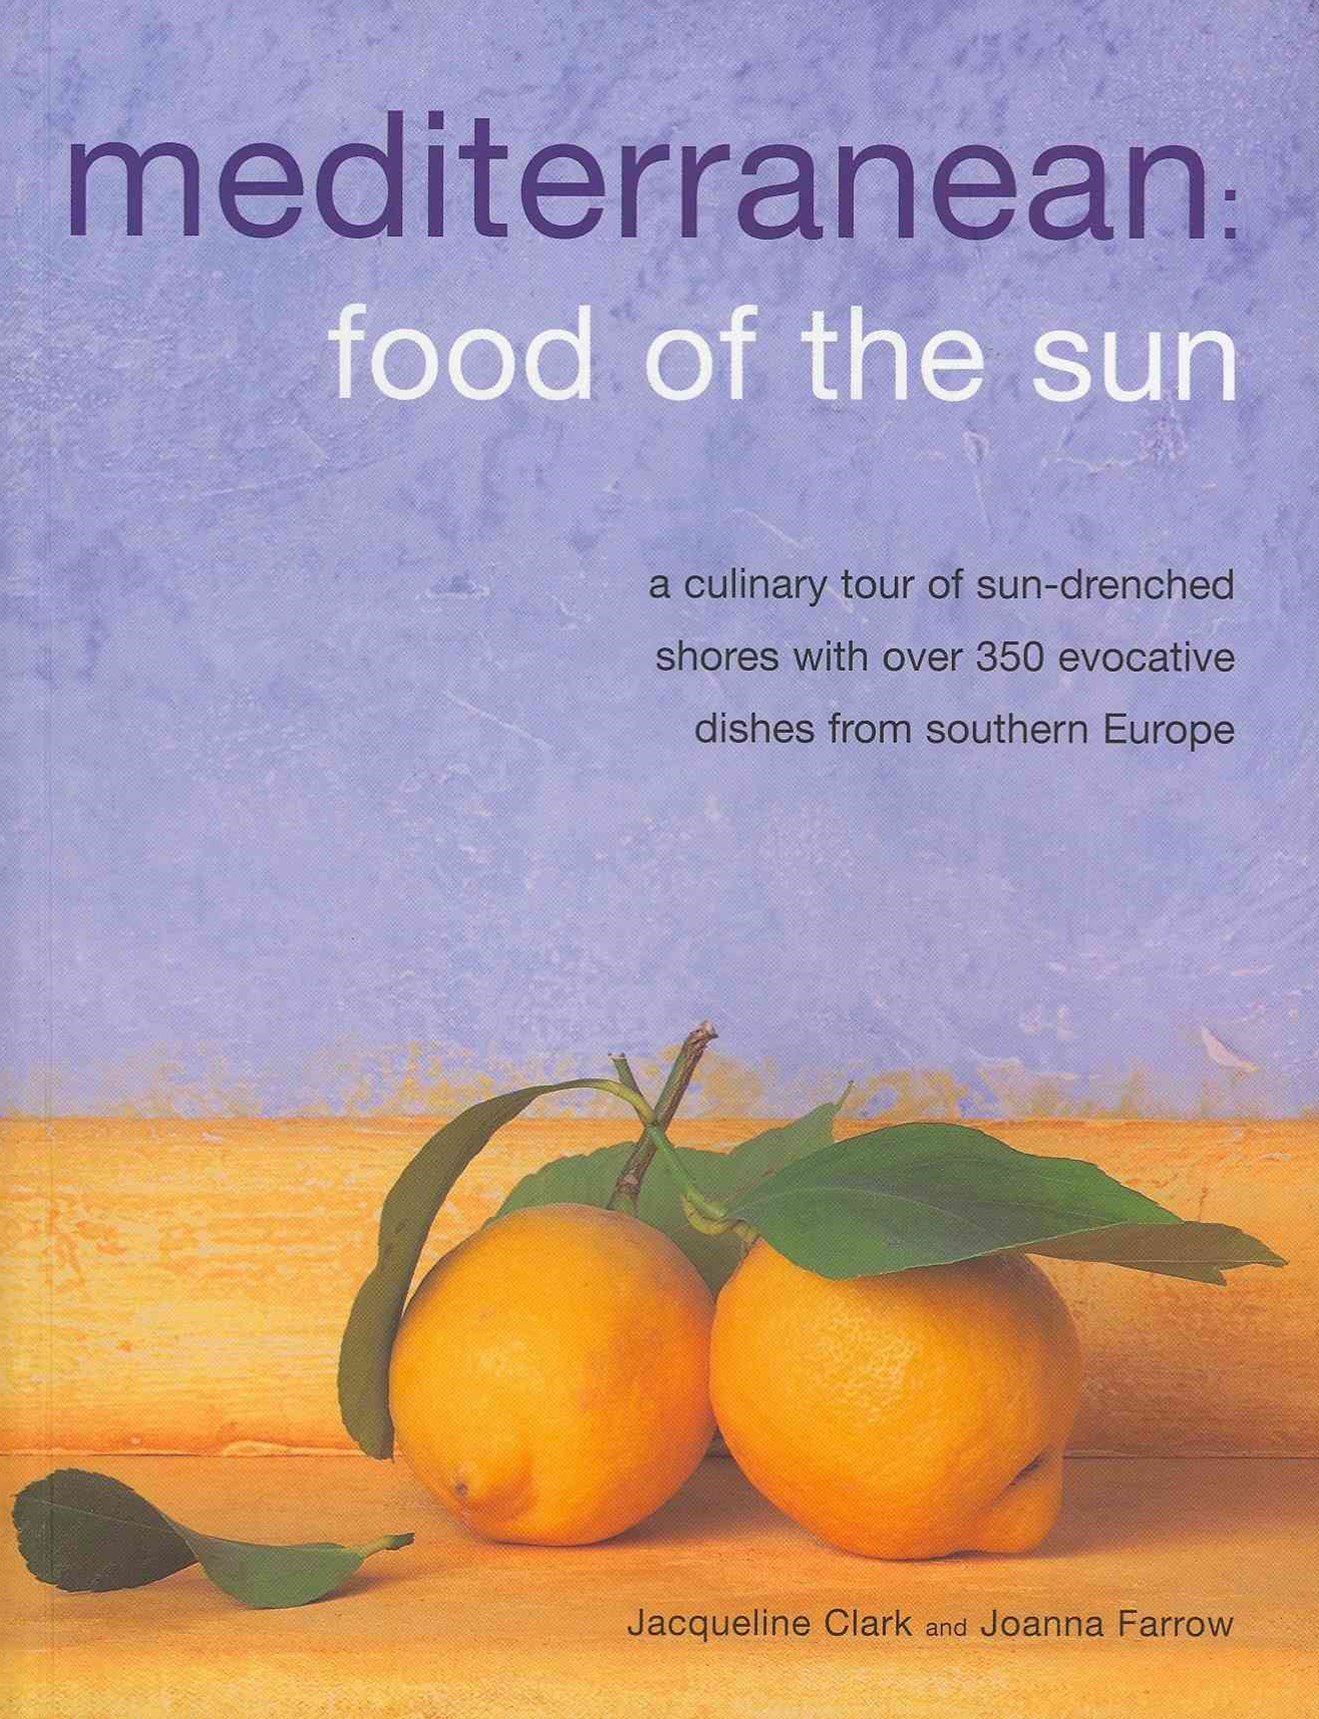 Meditteranean: Food of the Sun